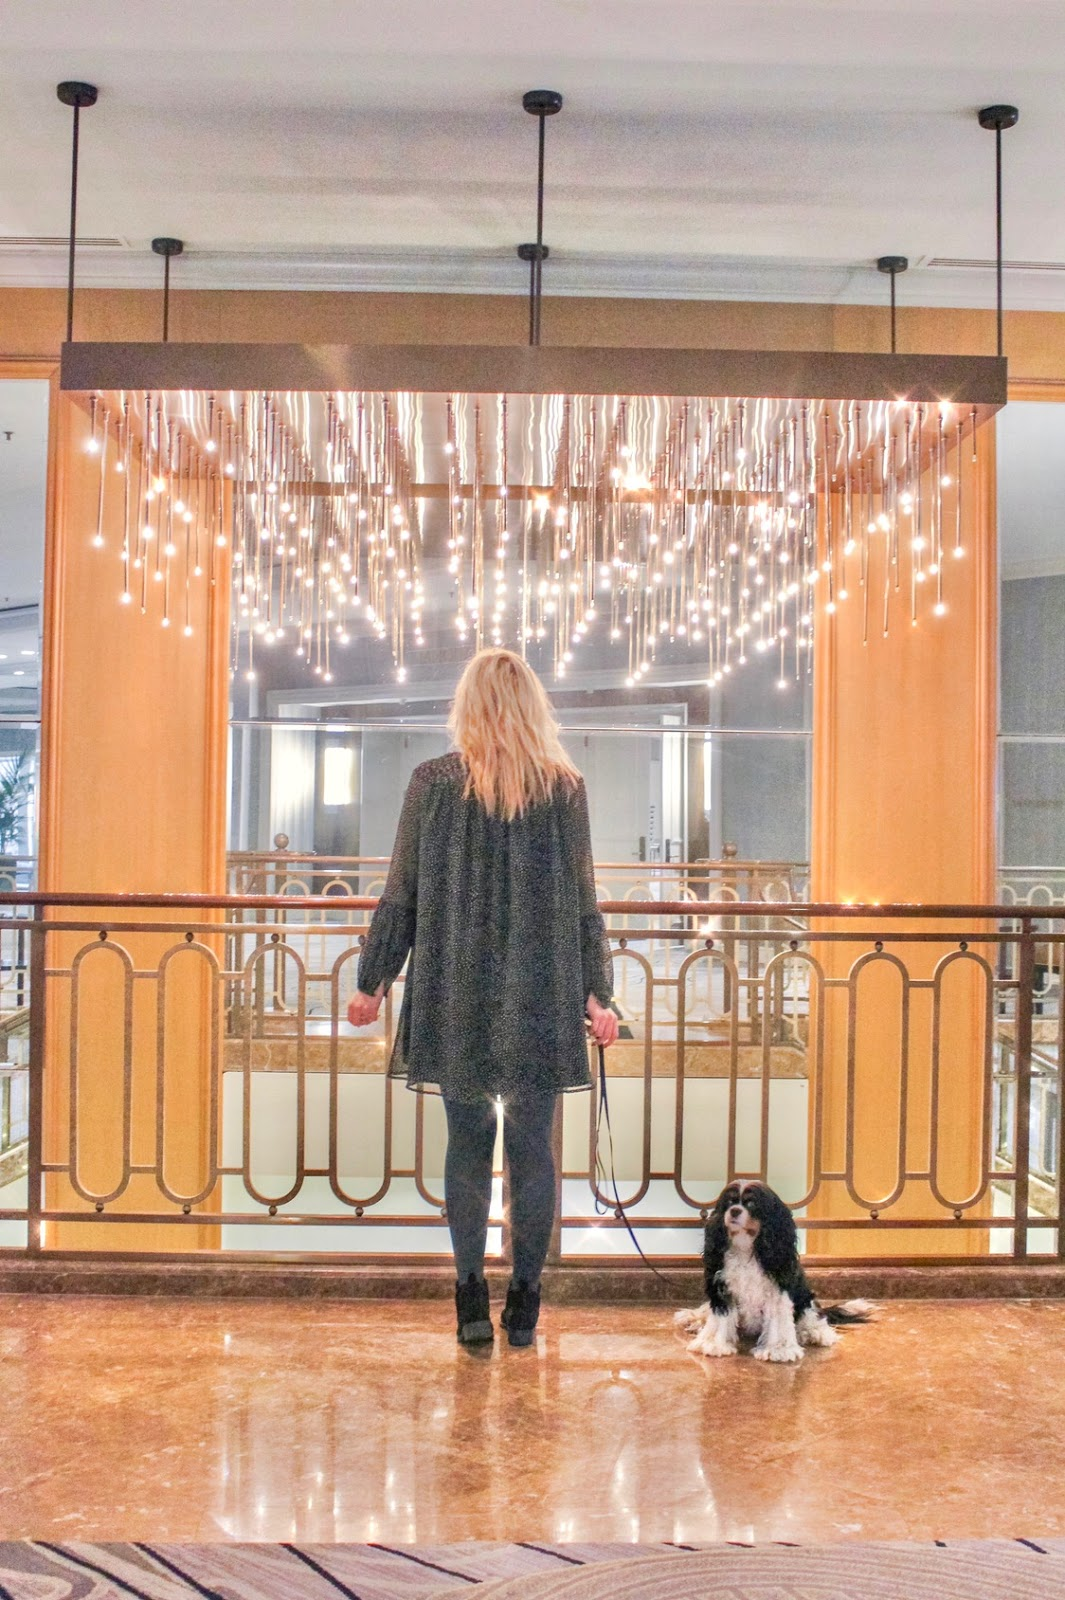 Where to Stay in Chicago, Fairmont Chicago Review - Pet Friendly Hotel - Cavalier King Charles Spaniel Puppy